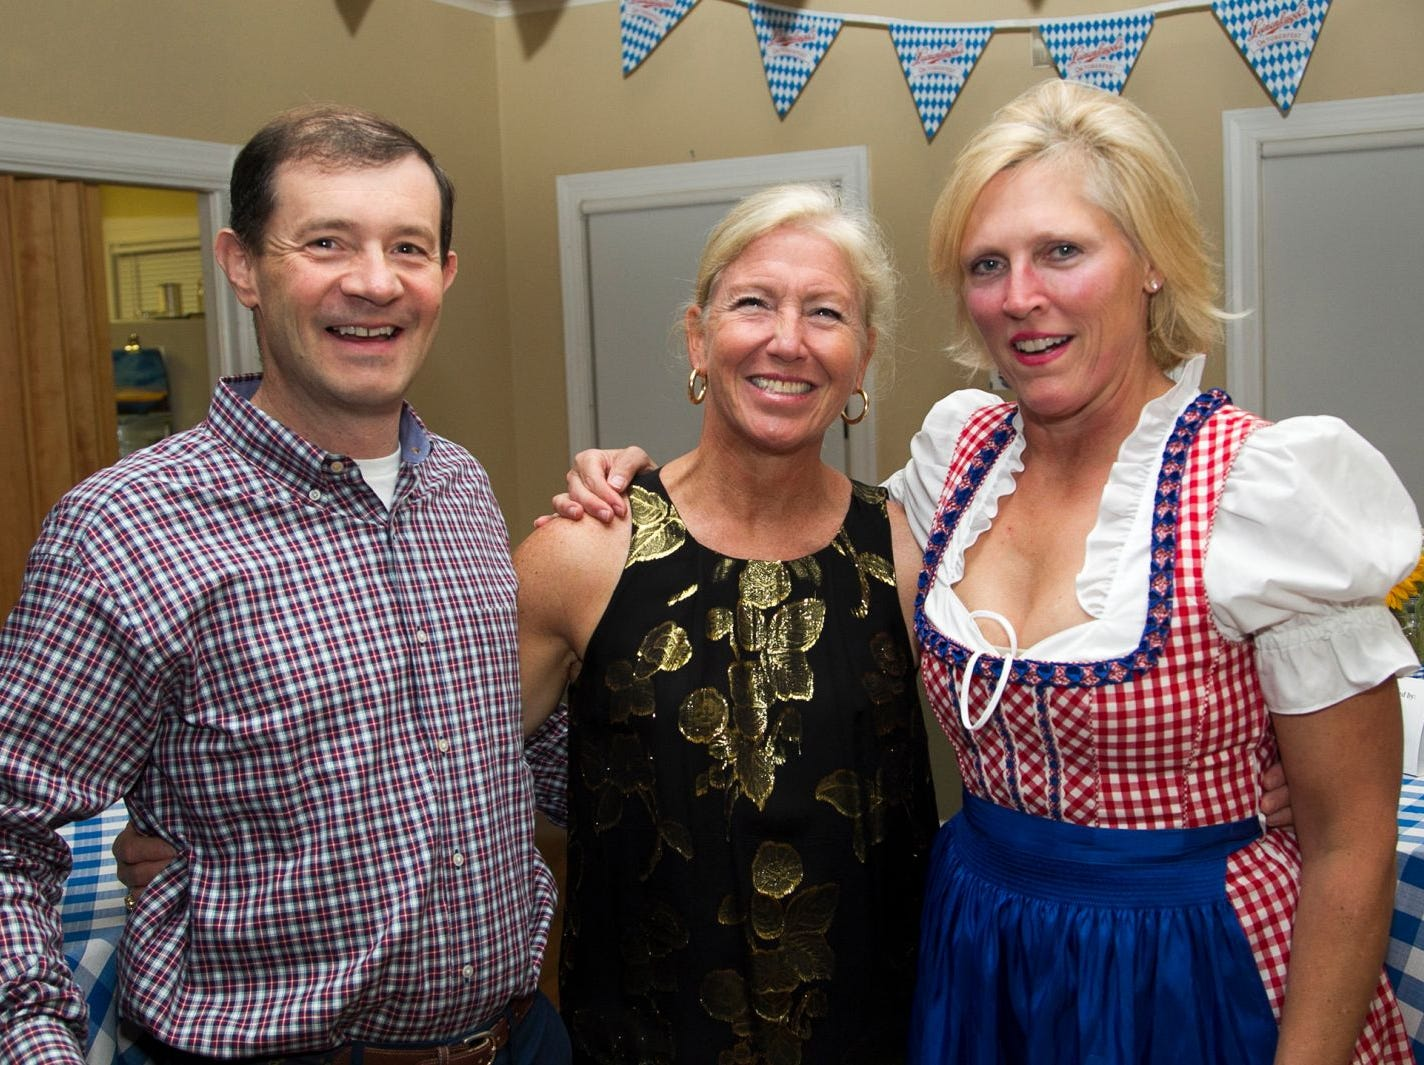 James and Elizabeth Clothier and Judy Irwin. Ridgewood Education Foundation's 2018 Oktoberfest at the Hermitage. 09/29/2018